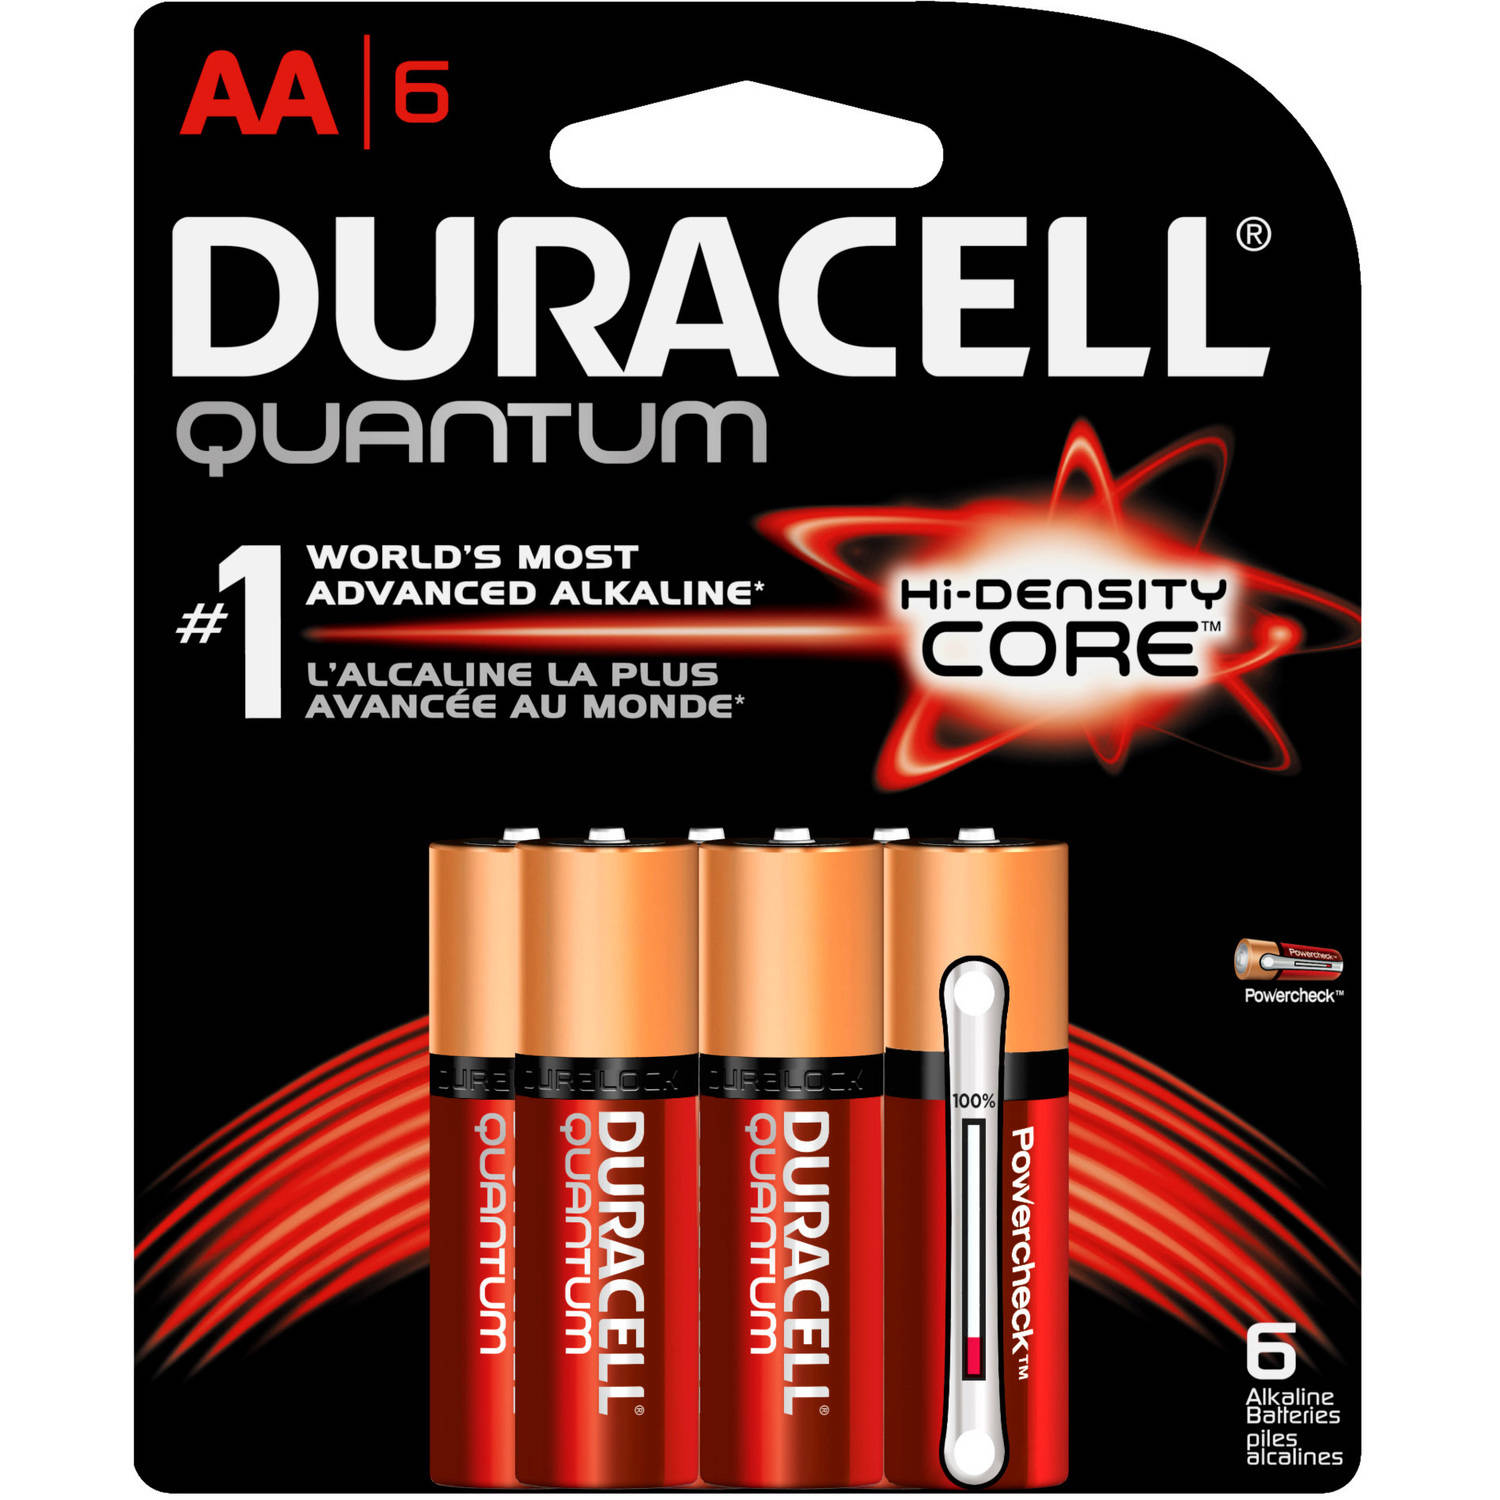 Duracell Quantum AA Alkaline Household Batteries 6ct Pack